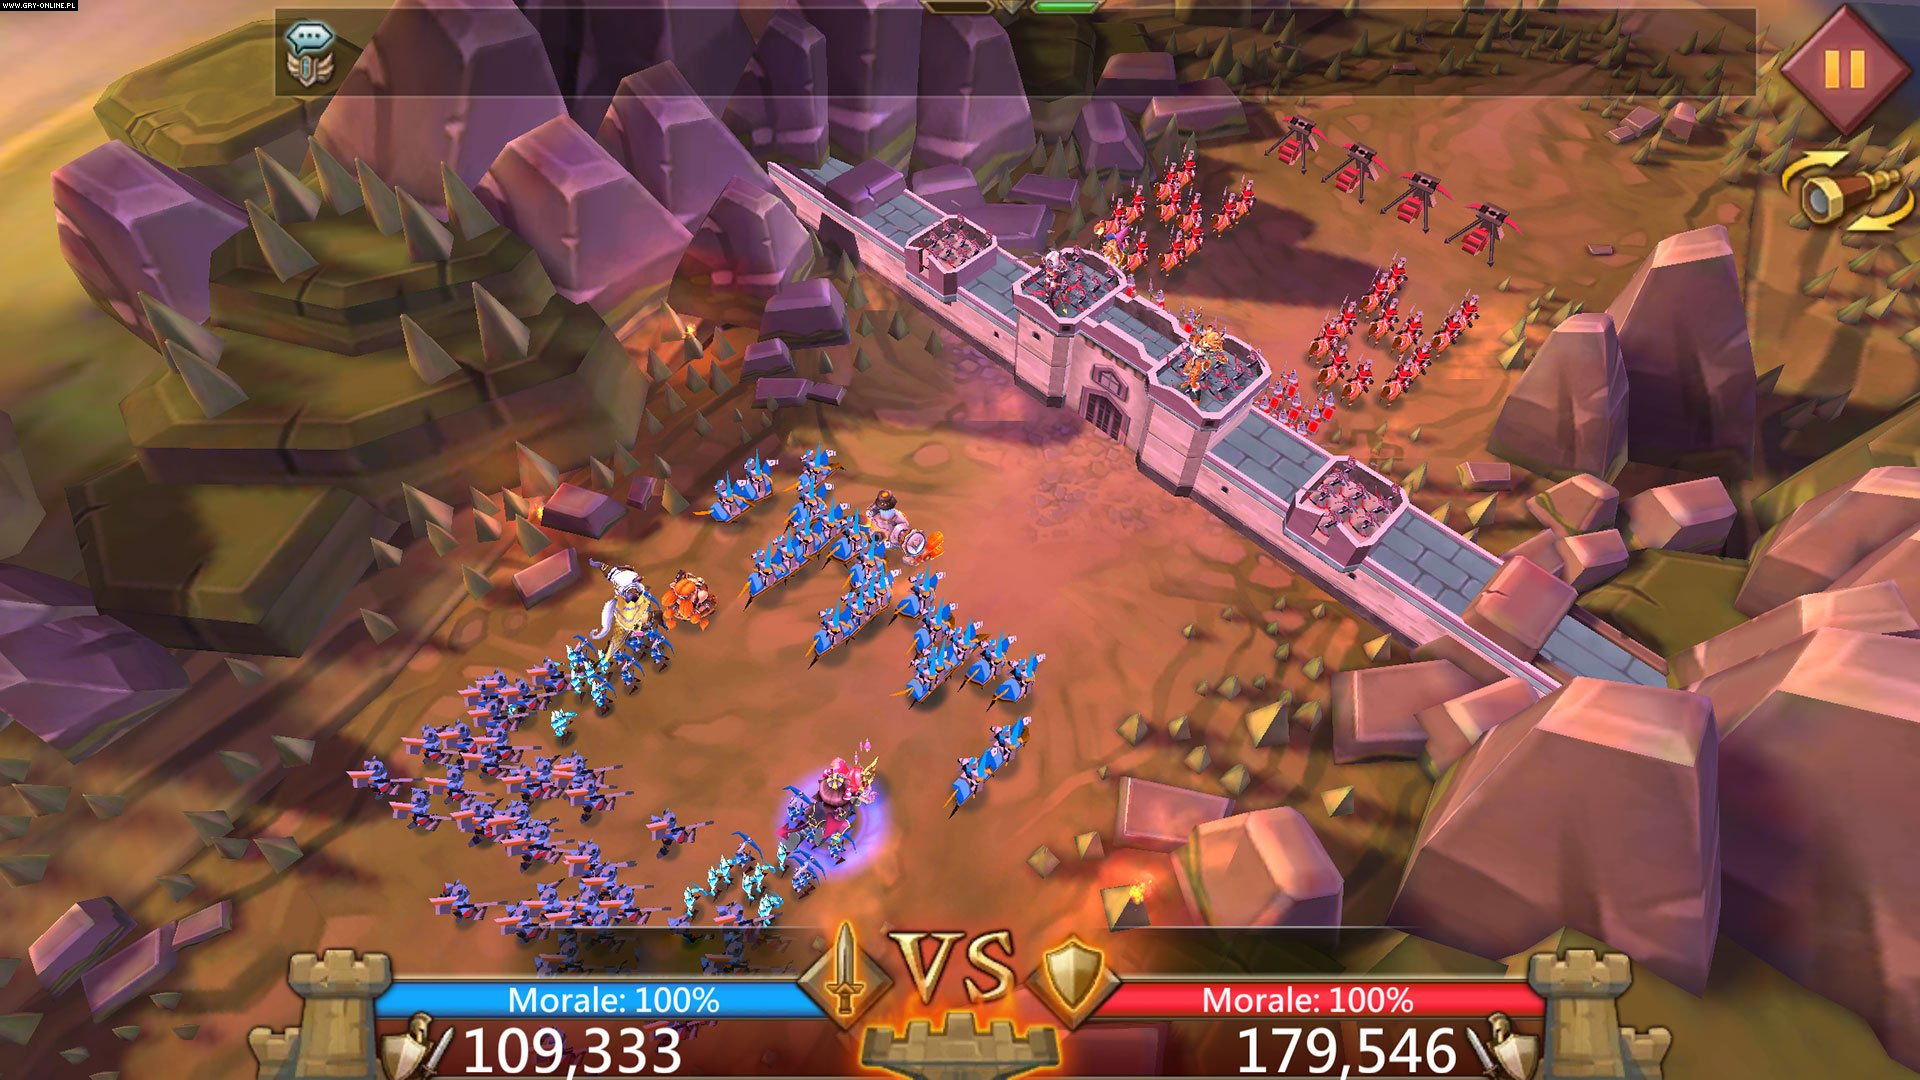 Lords Mobile PC Games Image 1/11, IGG